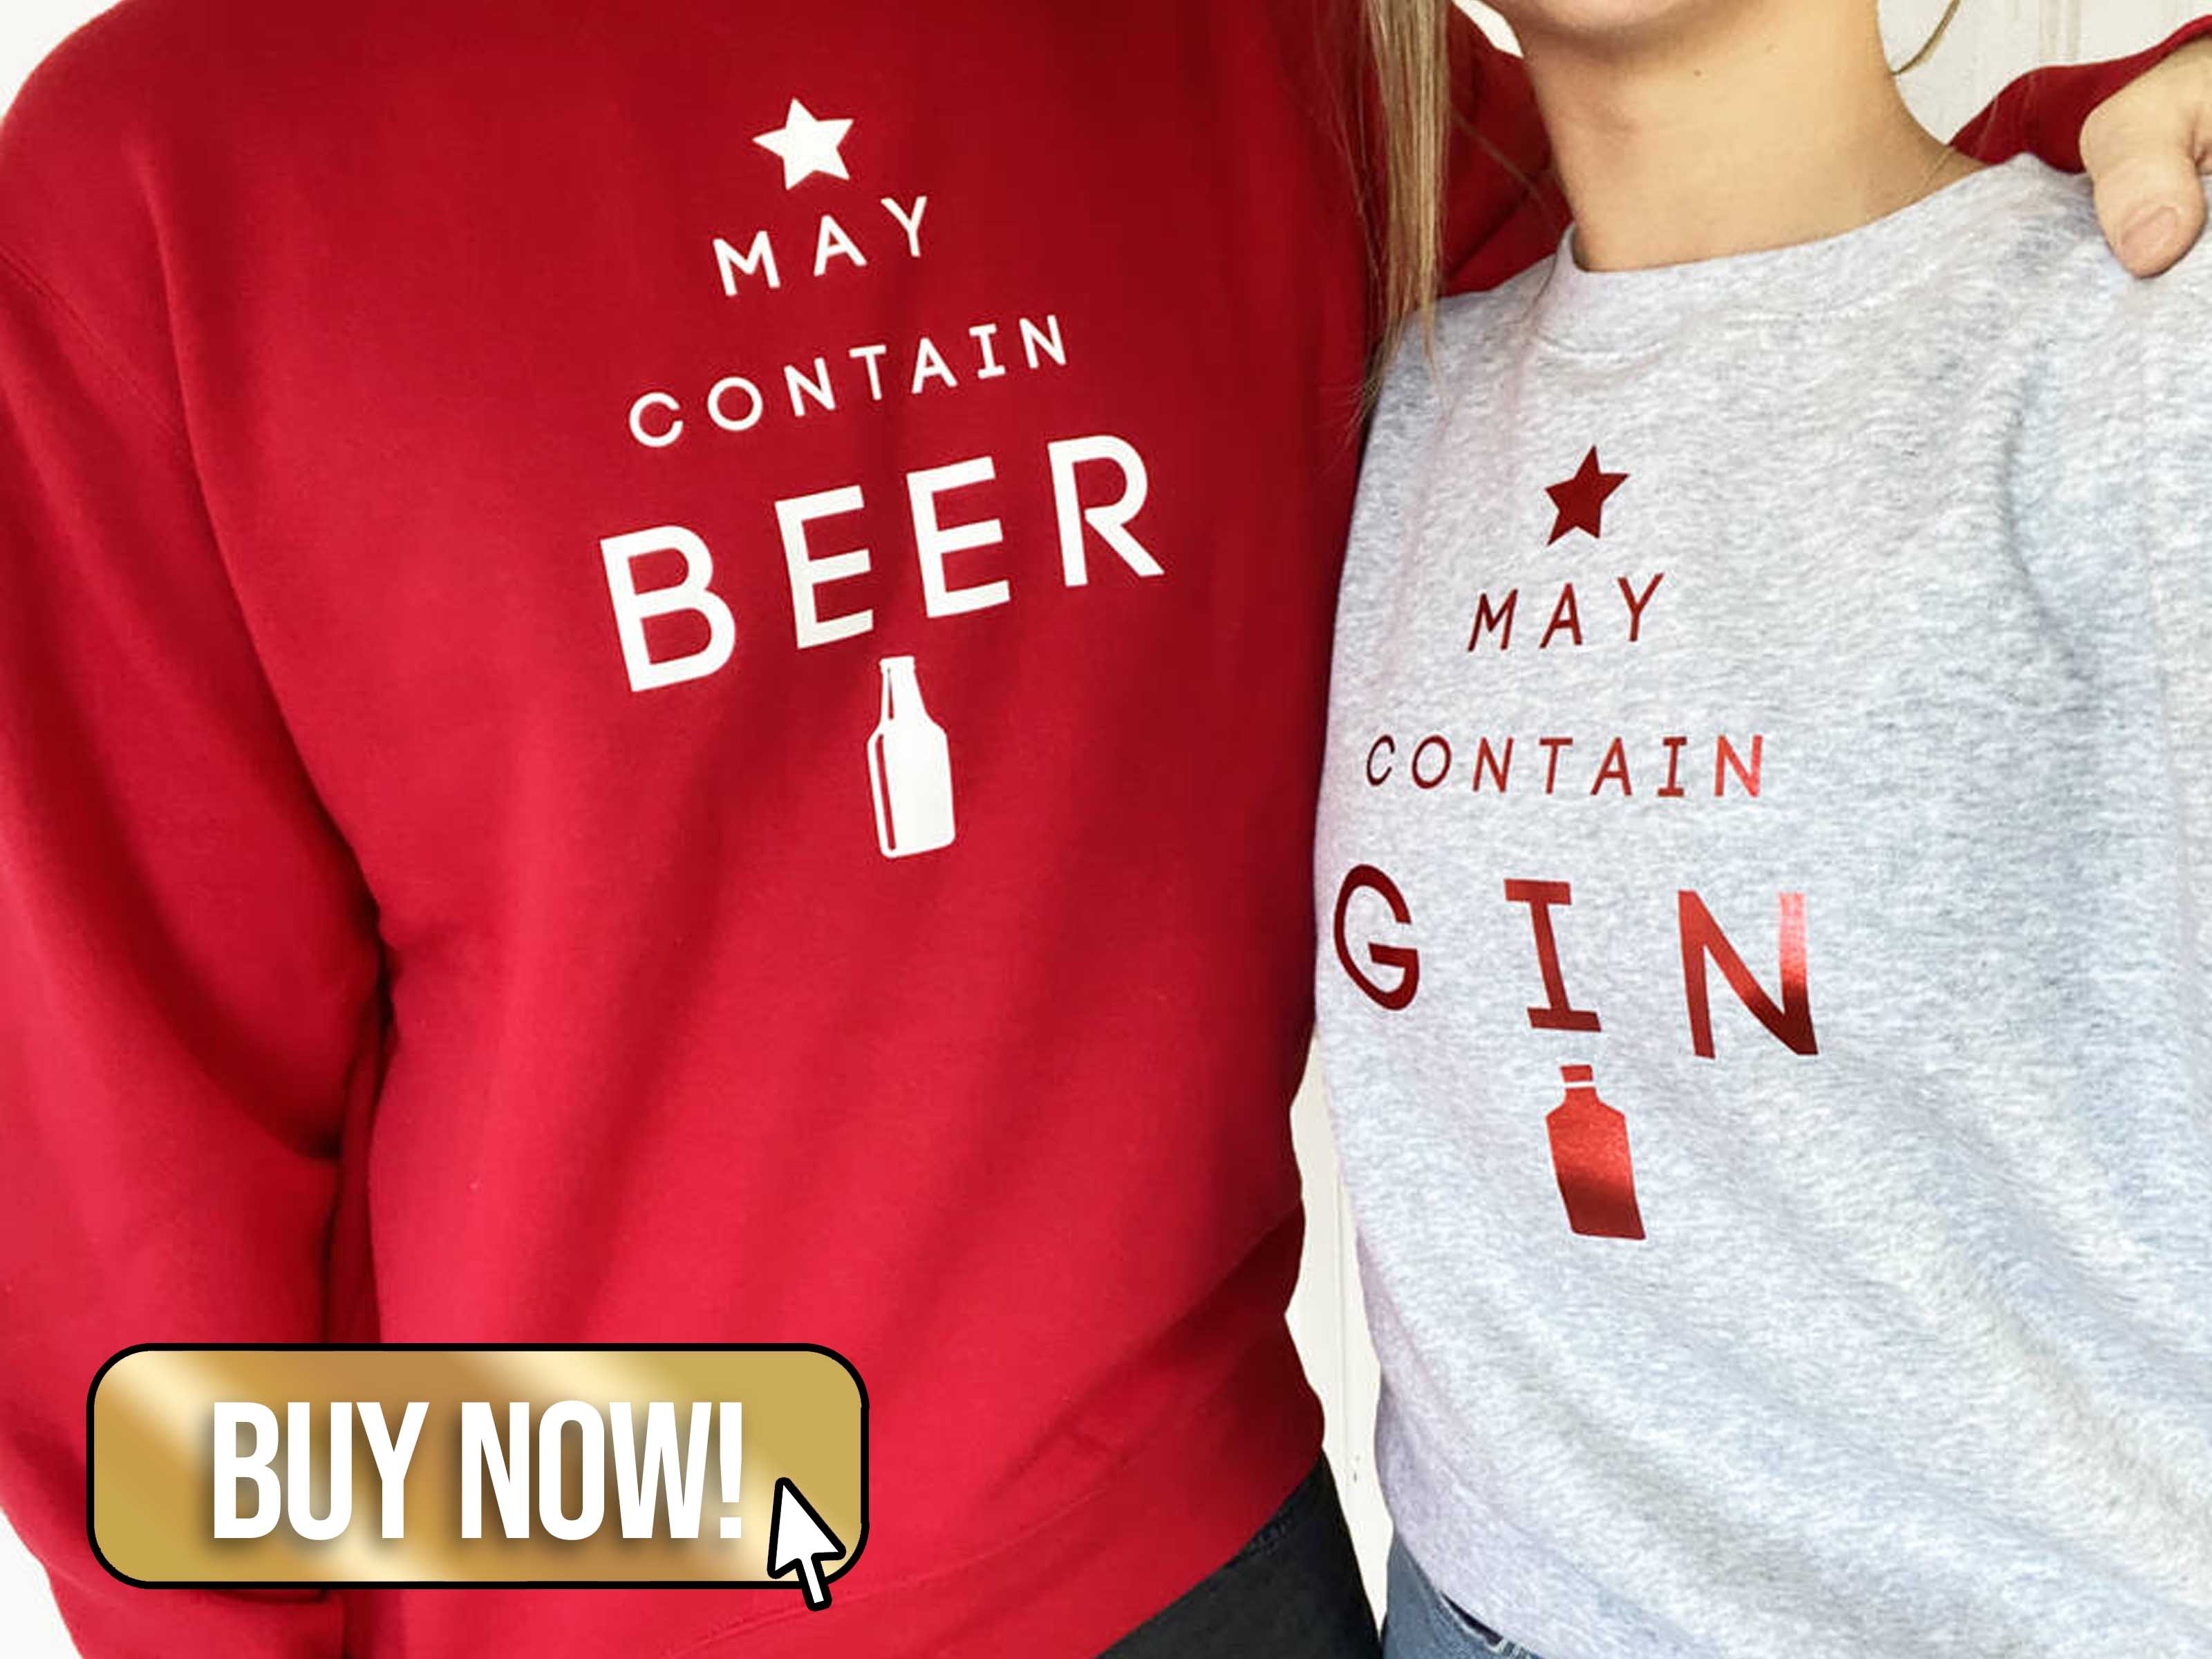 Gin And Beer Jumpers